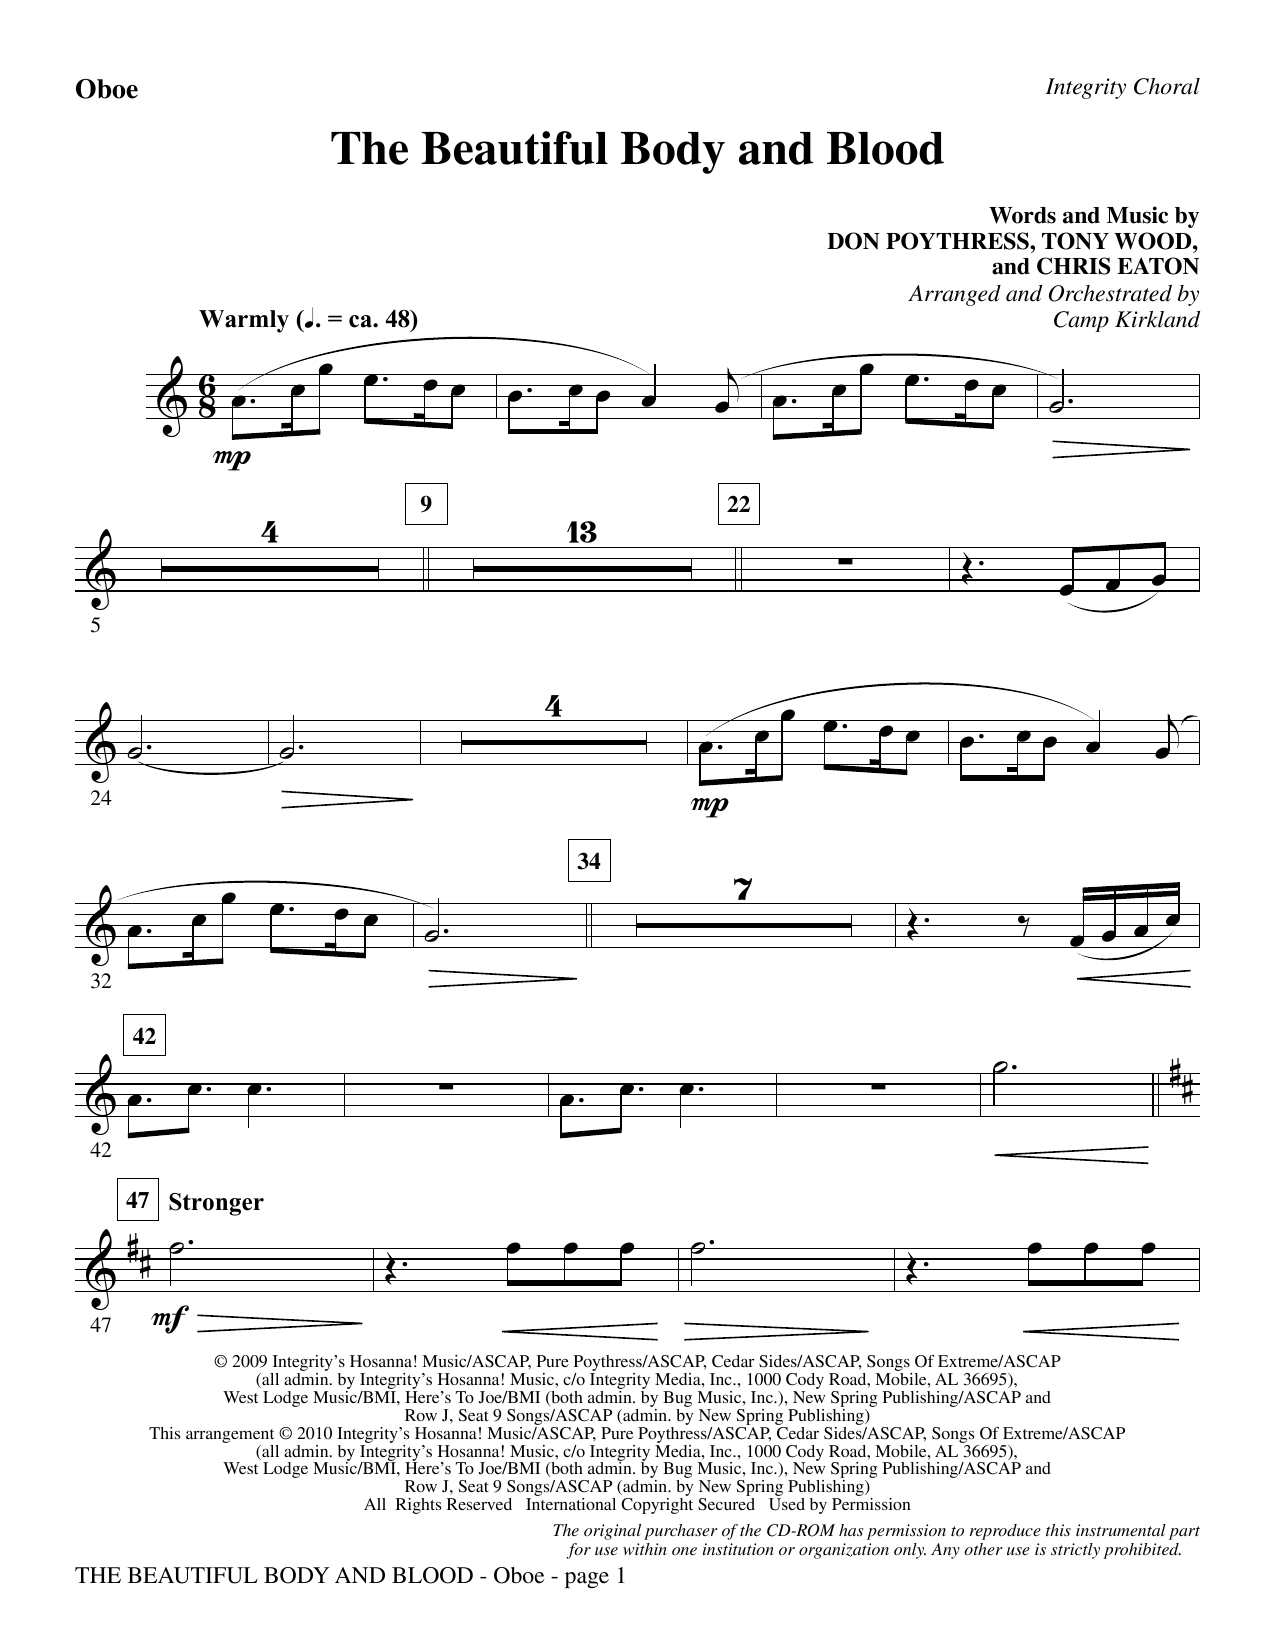 The Beautiful Body And Blood - Oboe sheet music